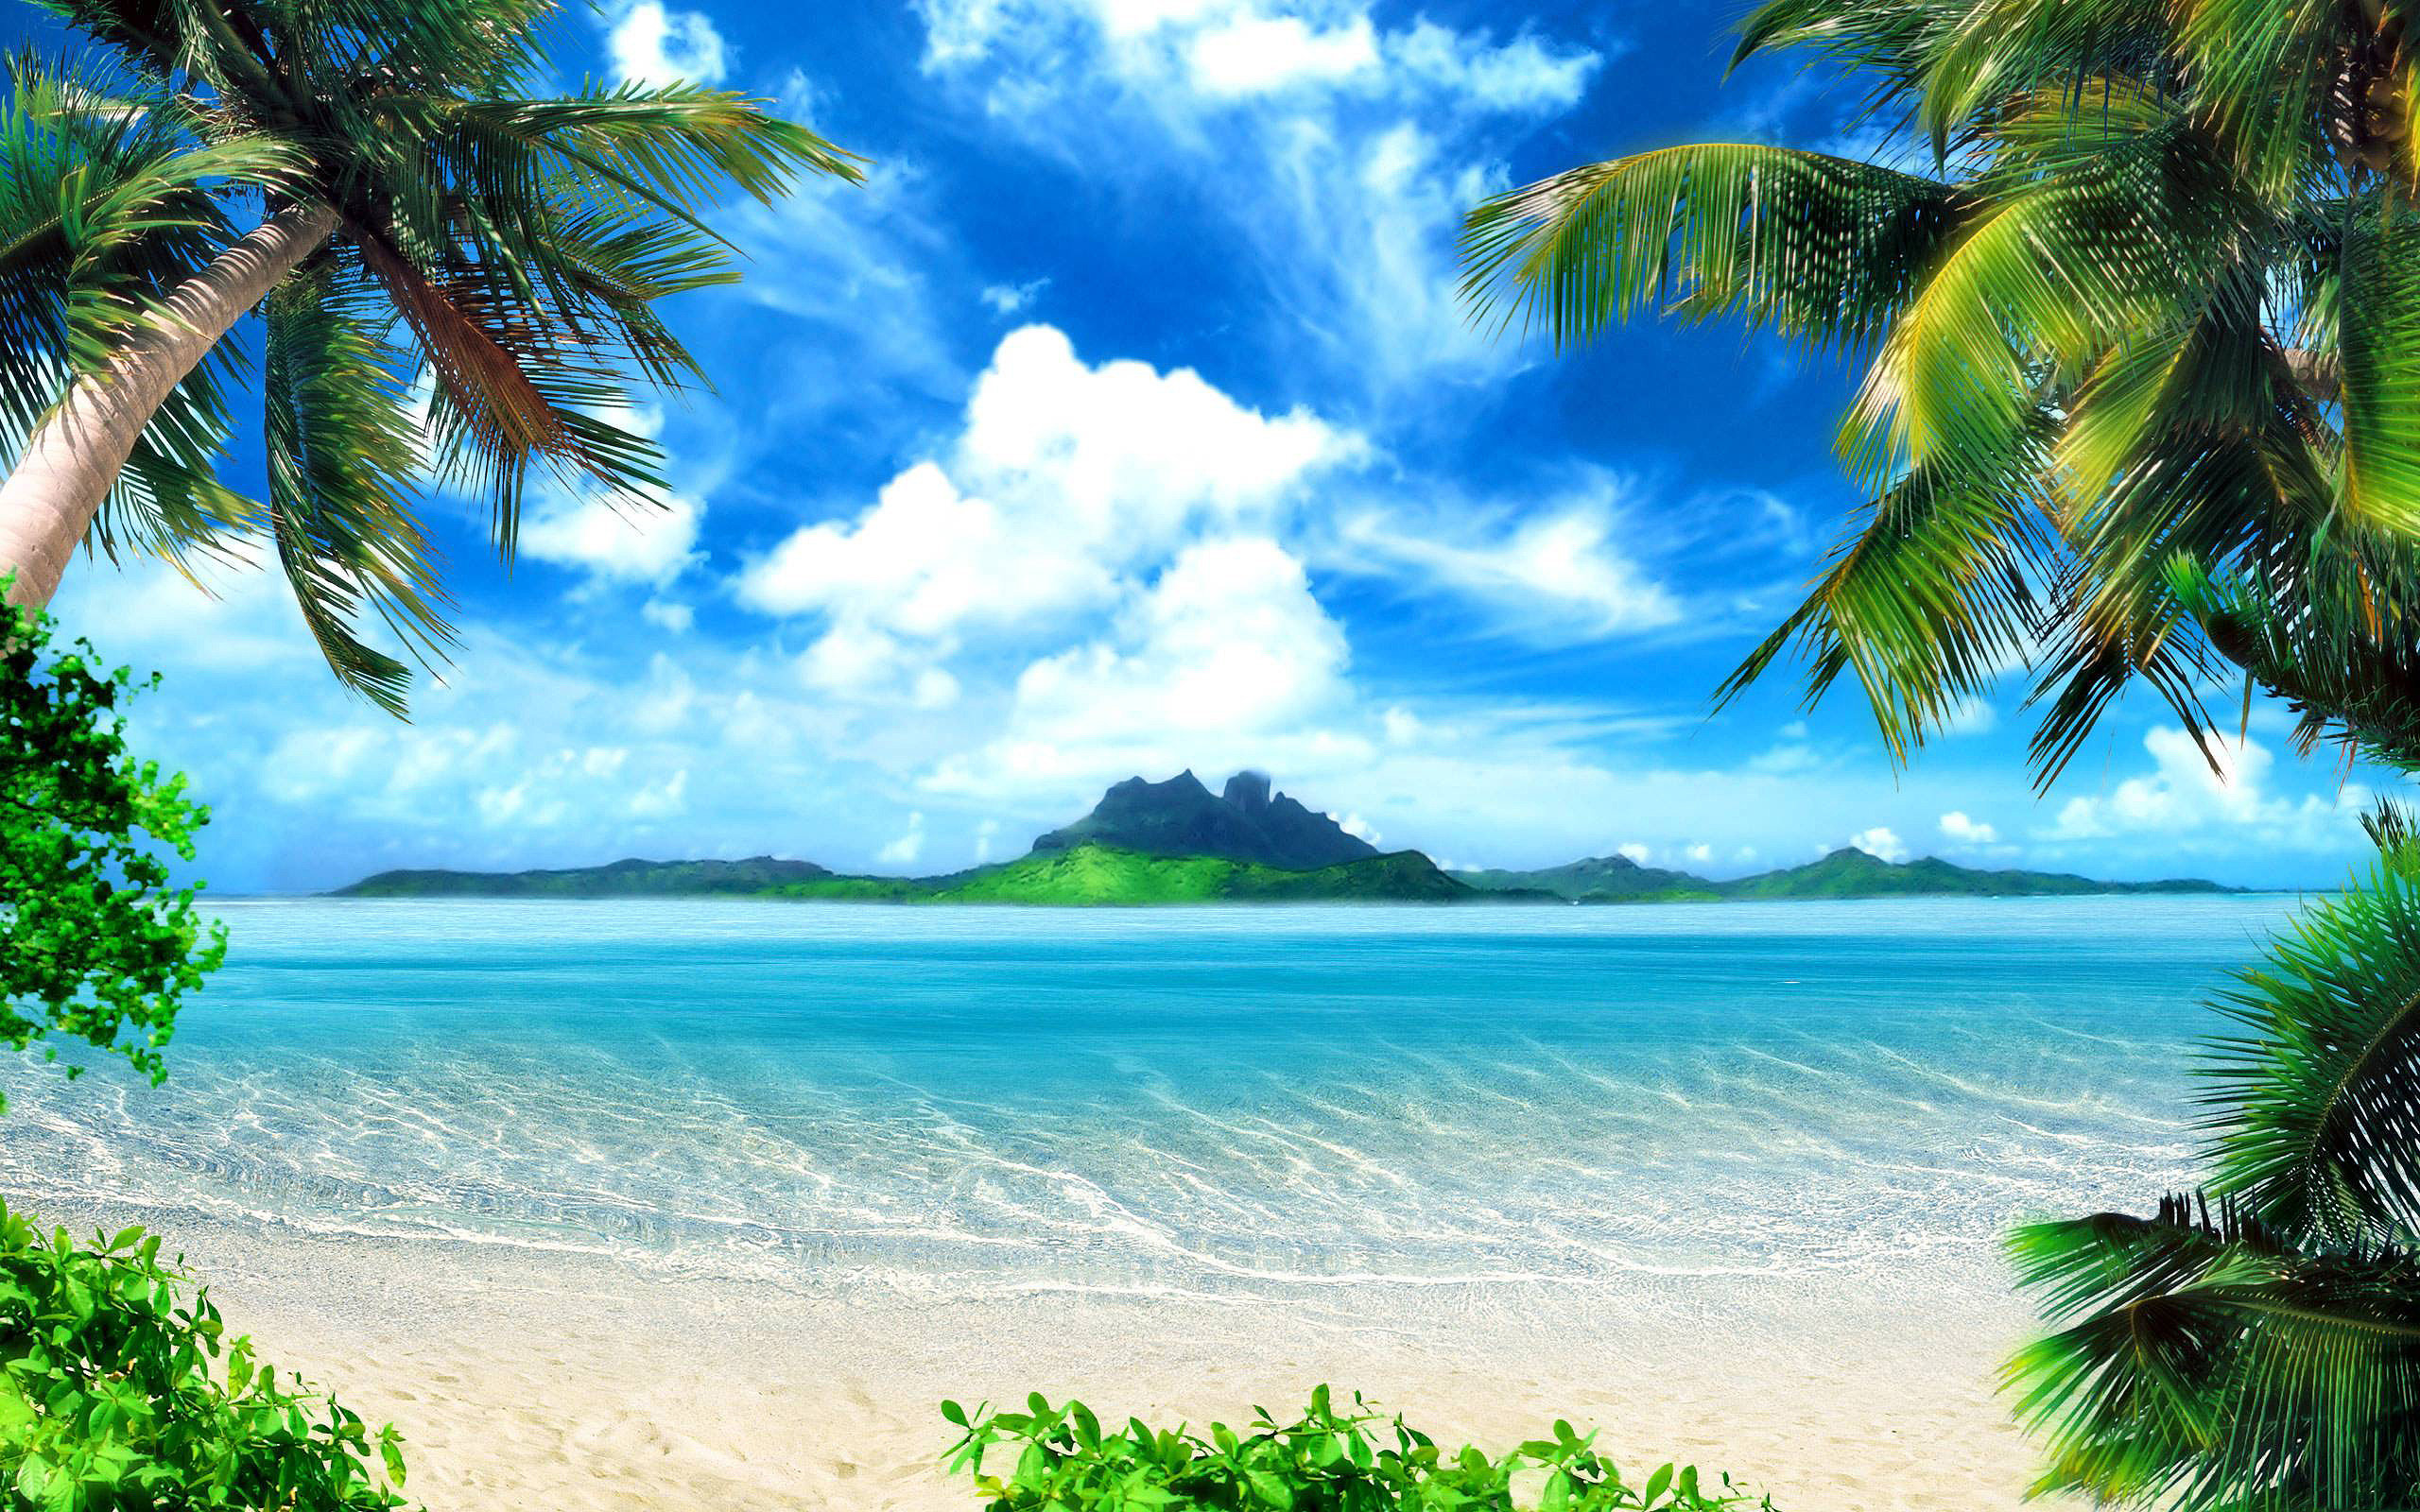 wallpaper Tropical Beach Wallpaper hd wallpaper background desktop 2560x1600